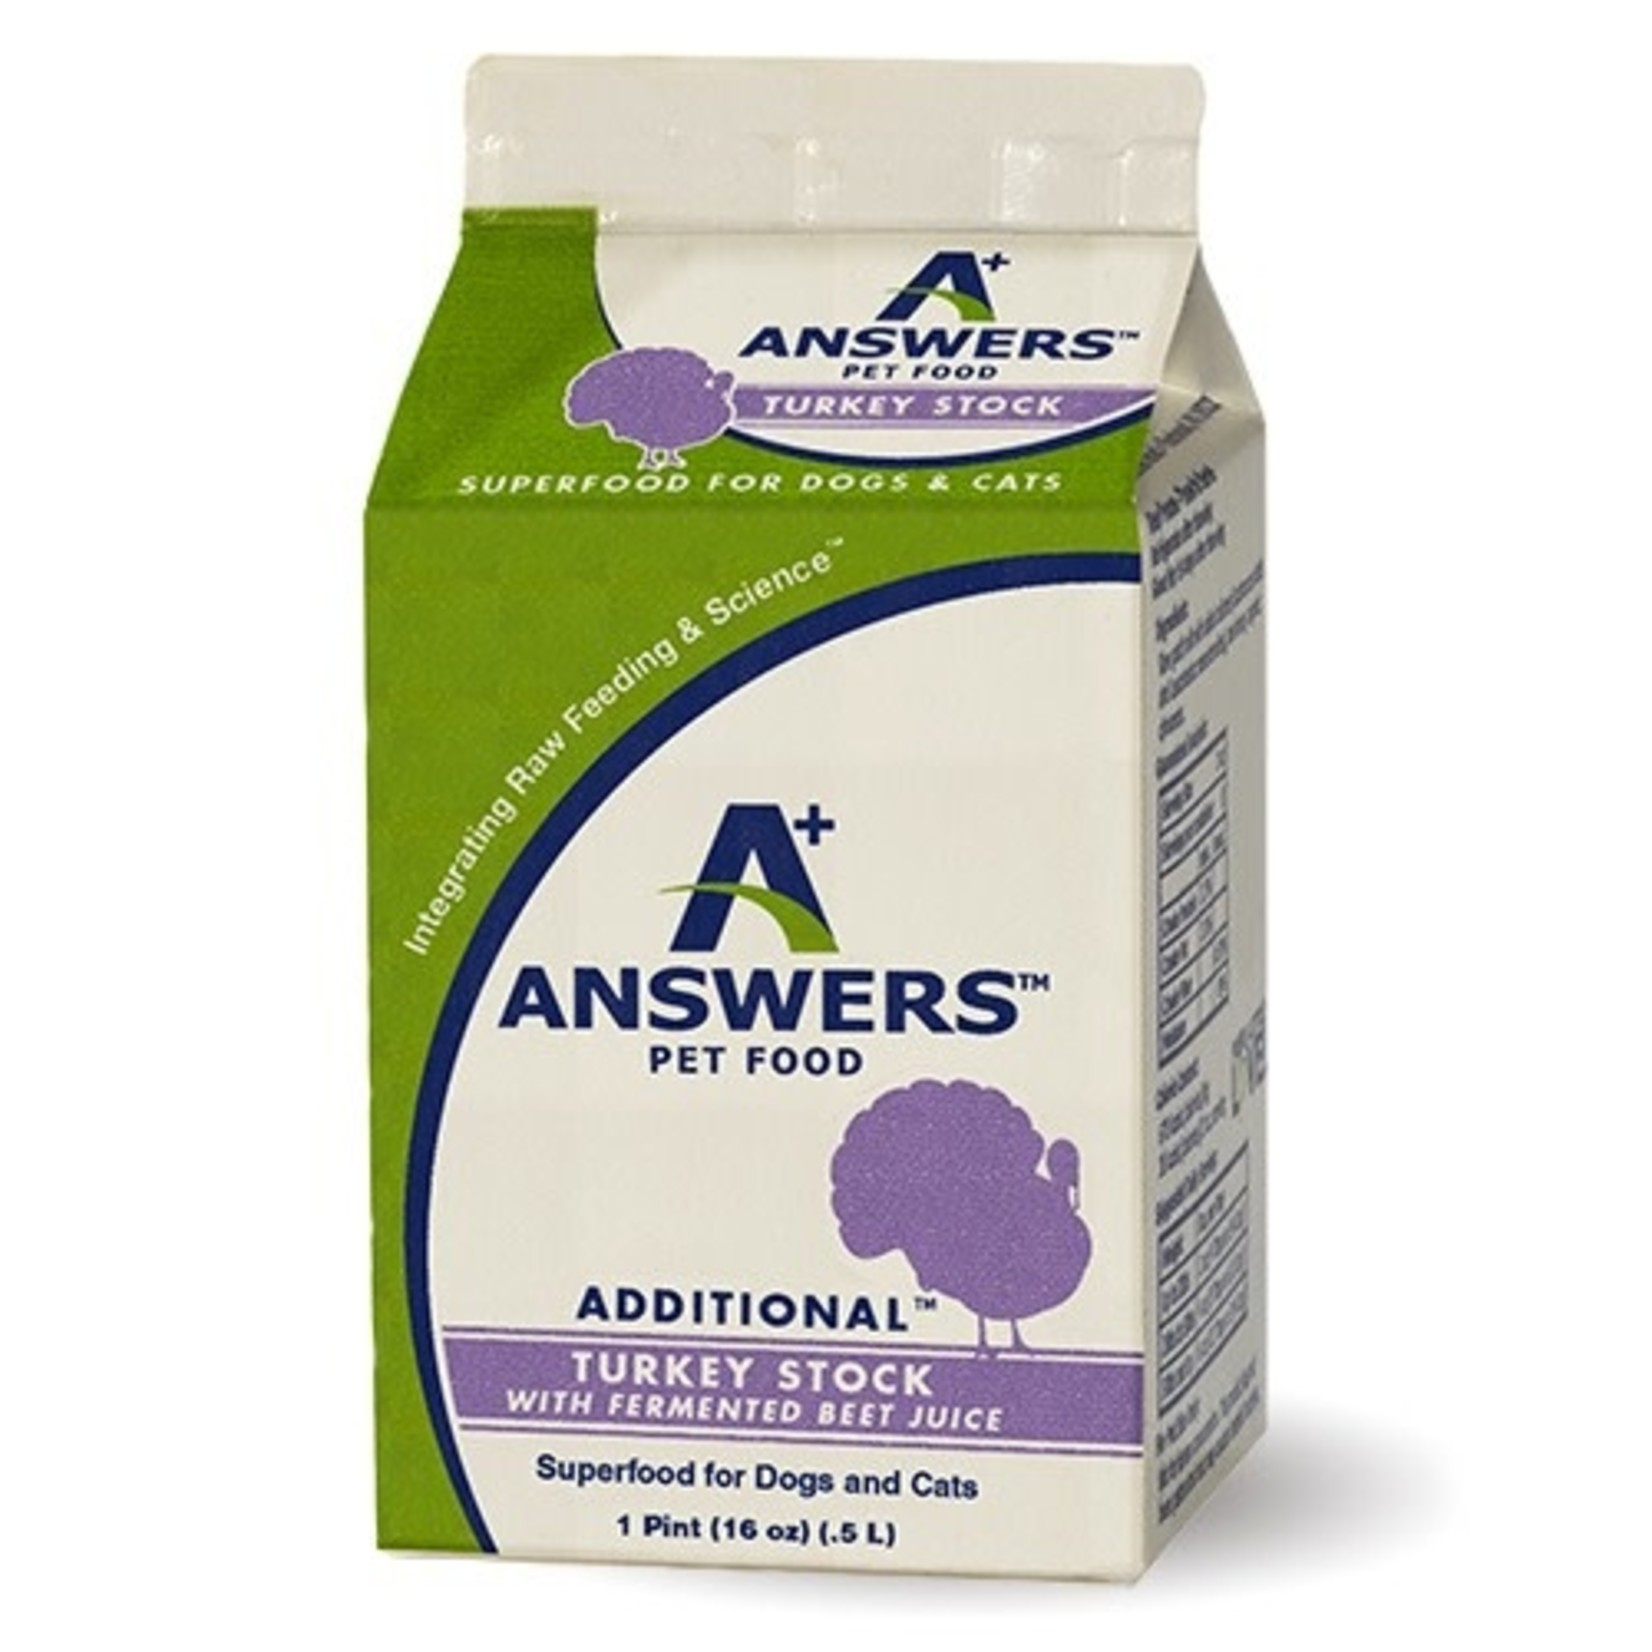 Answers Pet Food Answers Turkey Stock with Fermented Beet Juice 16 OZ